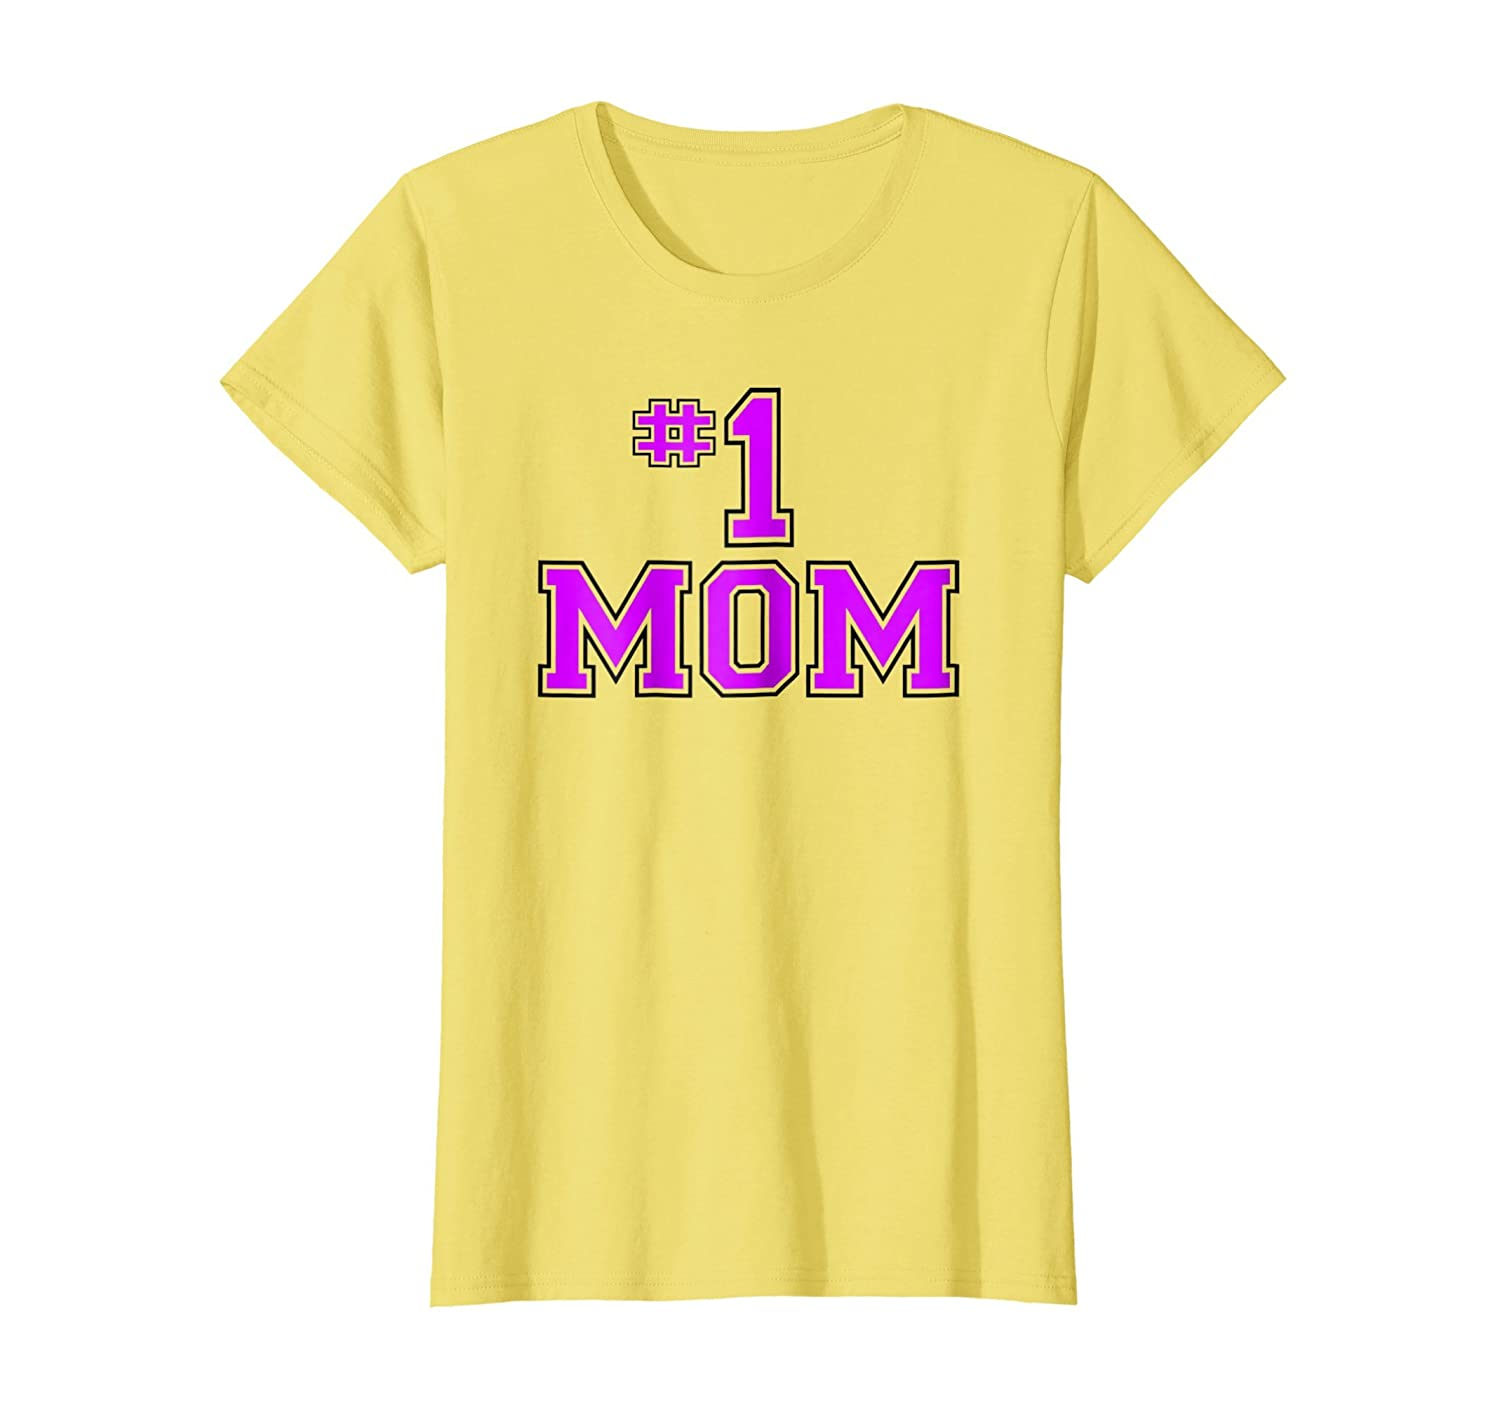 fe70195a9243f Amazon.com: Womens Mother's Day T-Shirt - 'Number One Mom' - Great ...